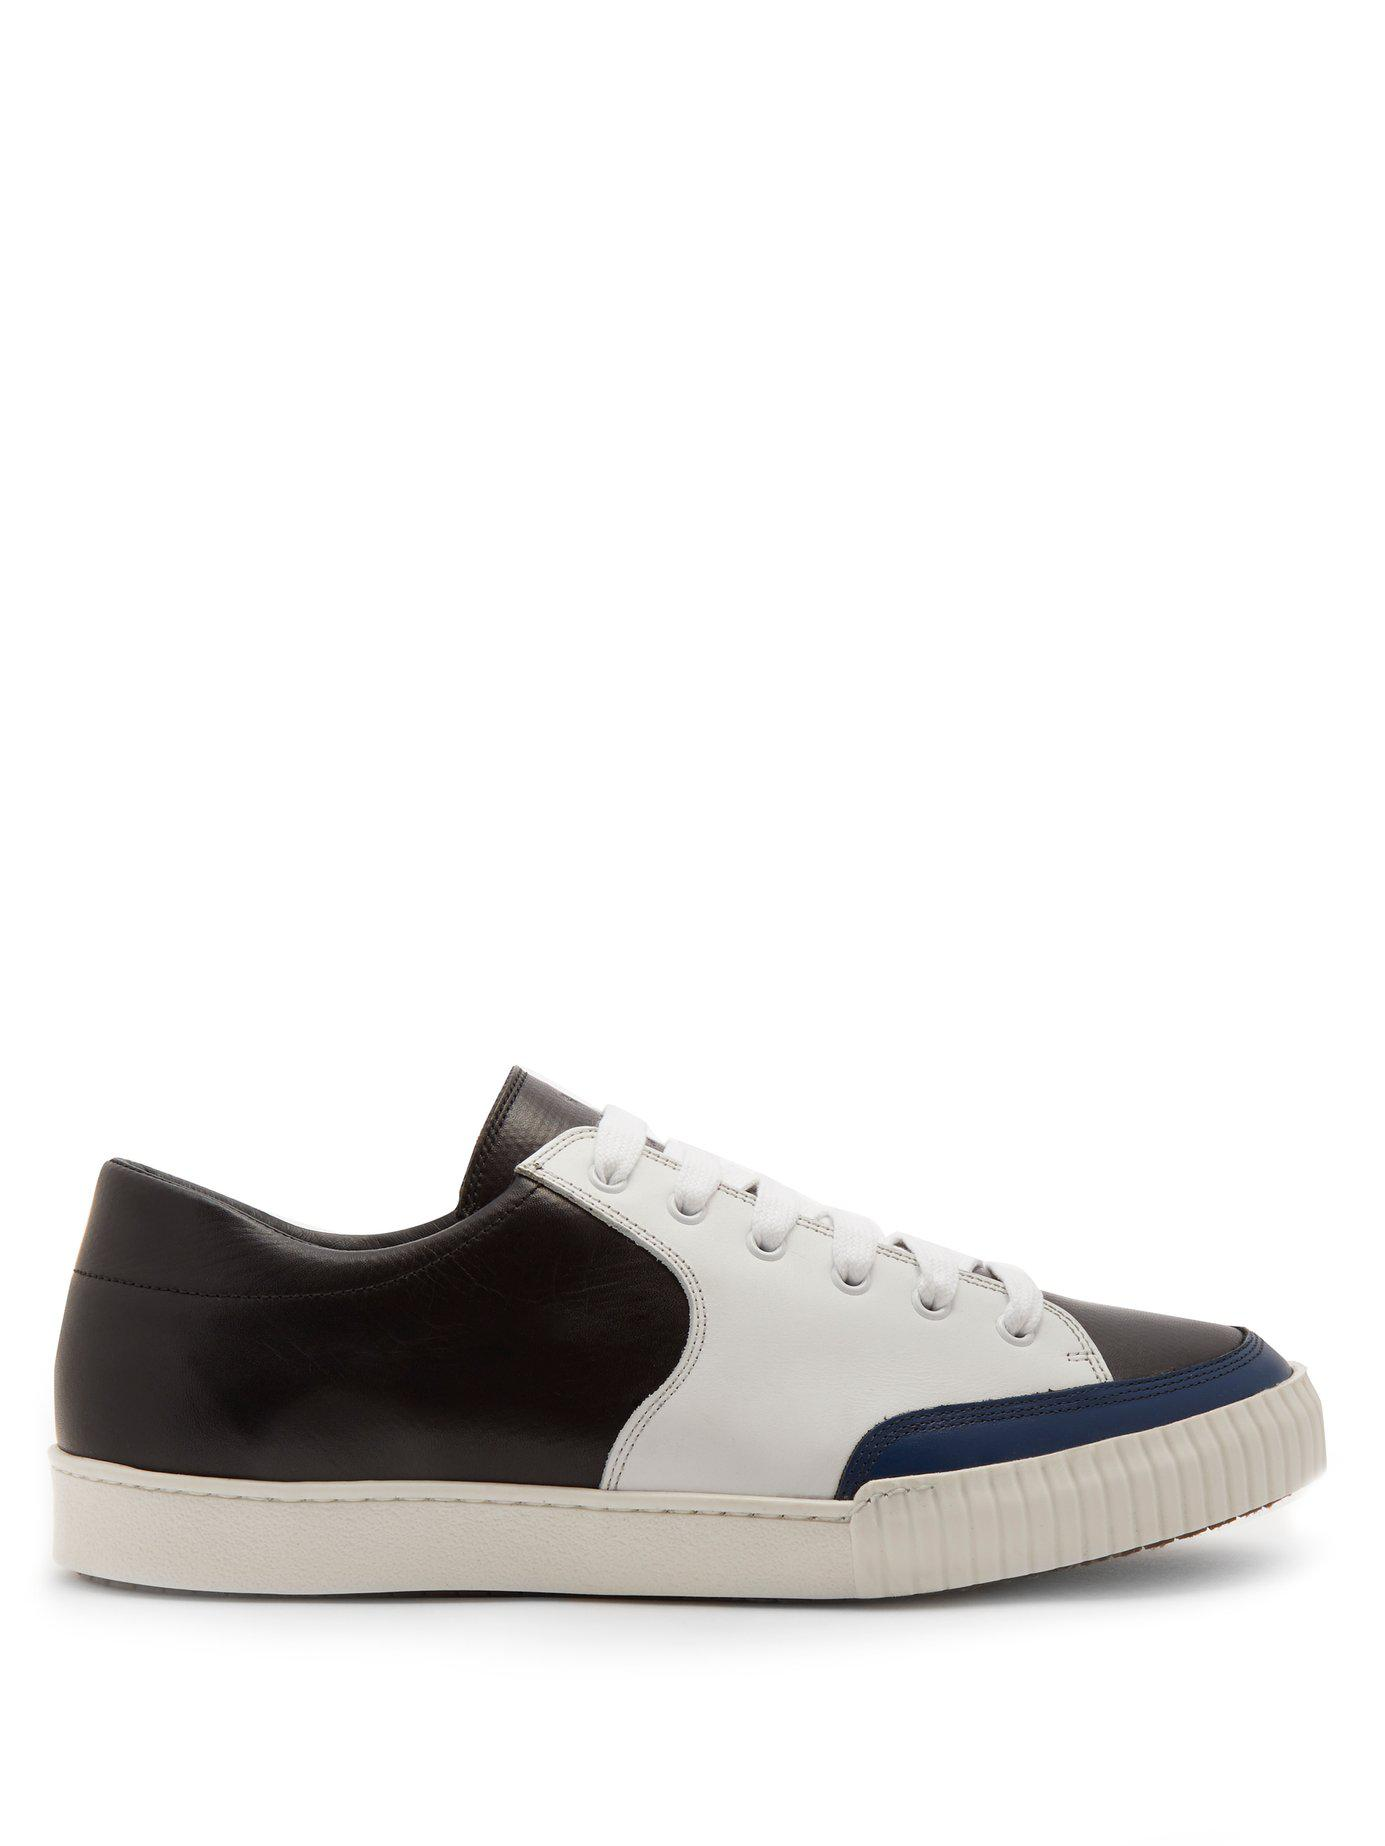 1d01e2bdf8 Lyst - Marni Bi-colour Low-top Leather Trainers for Men